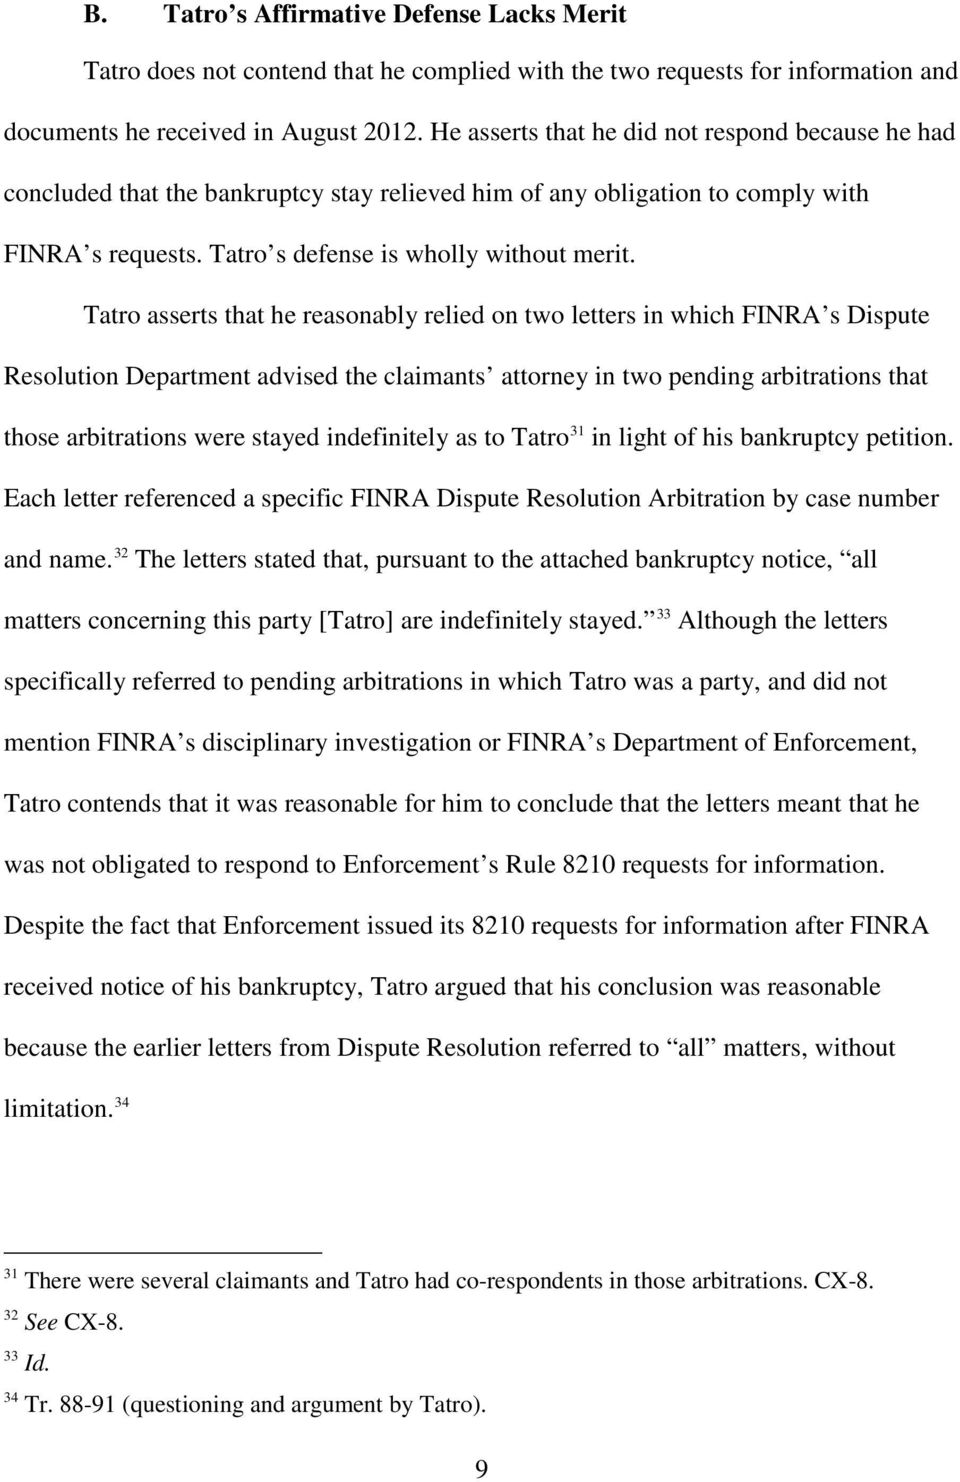 Tatro asserts that he reasonably relied on two letters in which FINRA s Dispute Resolution Department advised the claimants attorney in two pending arbitrations that those arbitrations were stayed